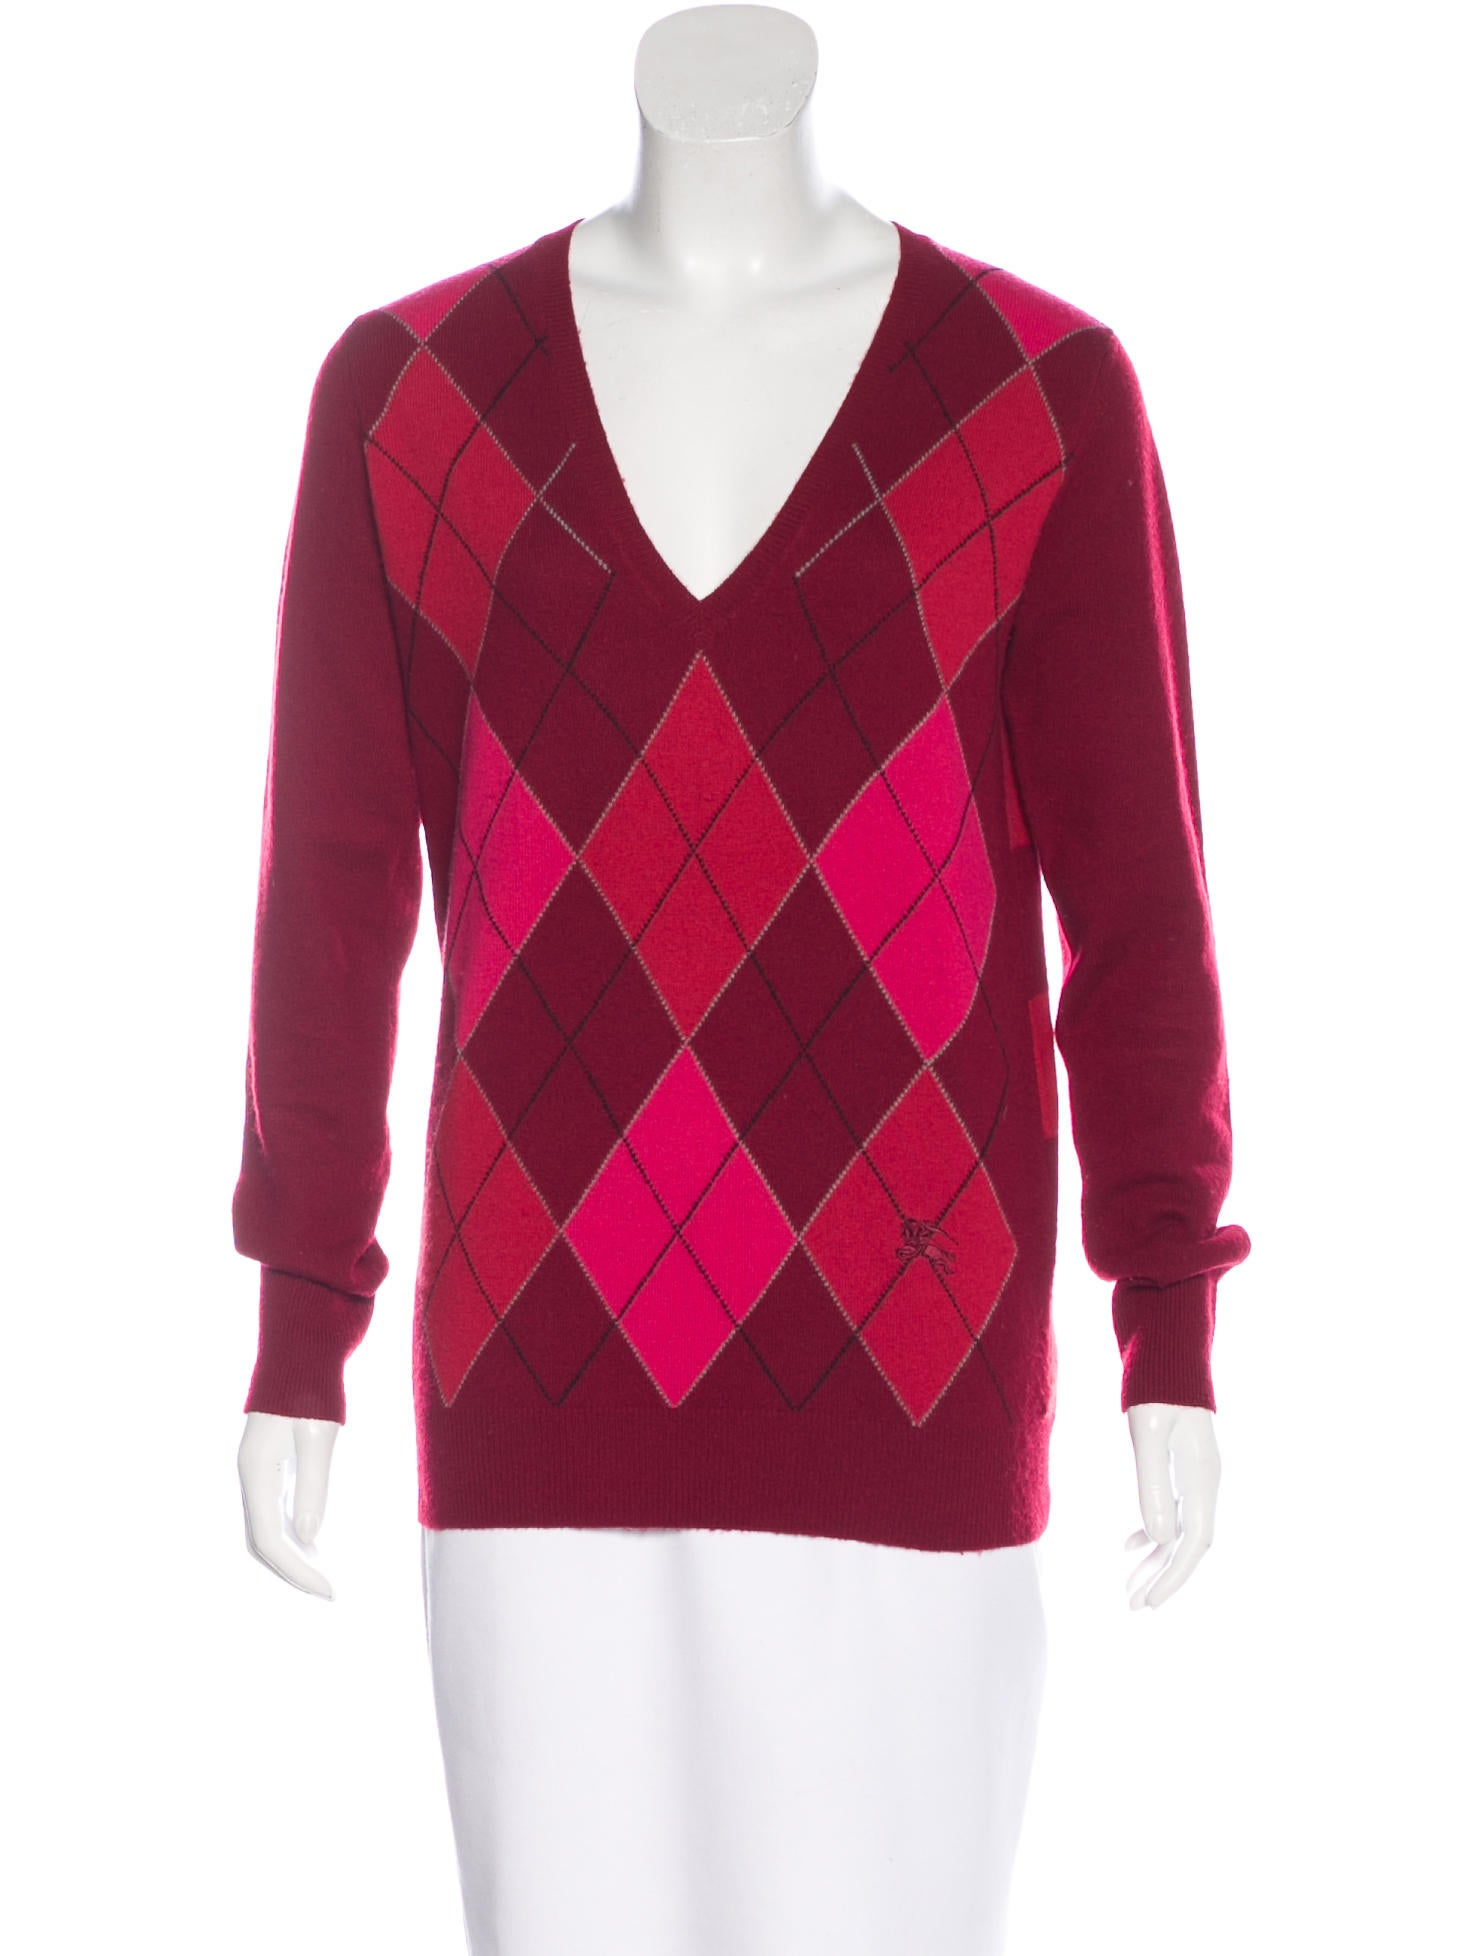 Burberry Cashmere Argyle Sweater - Clothing - BUR68976 | The RealReal